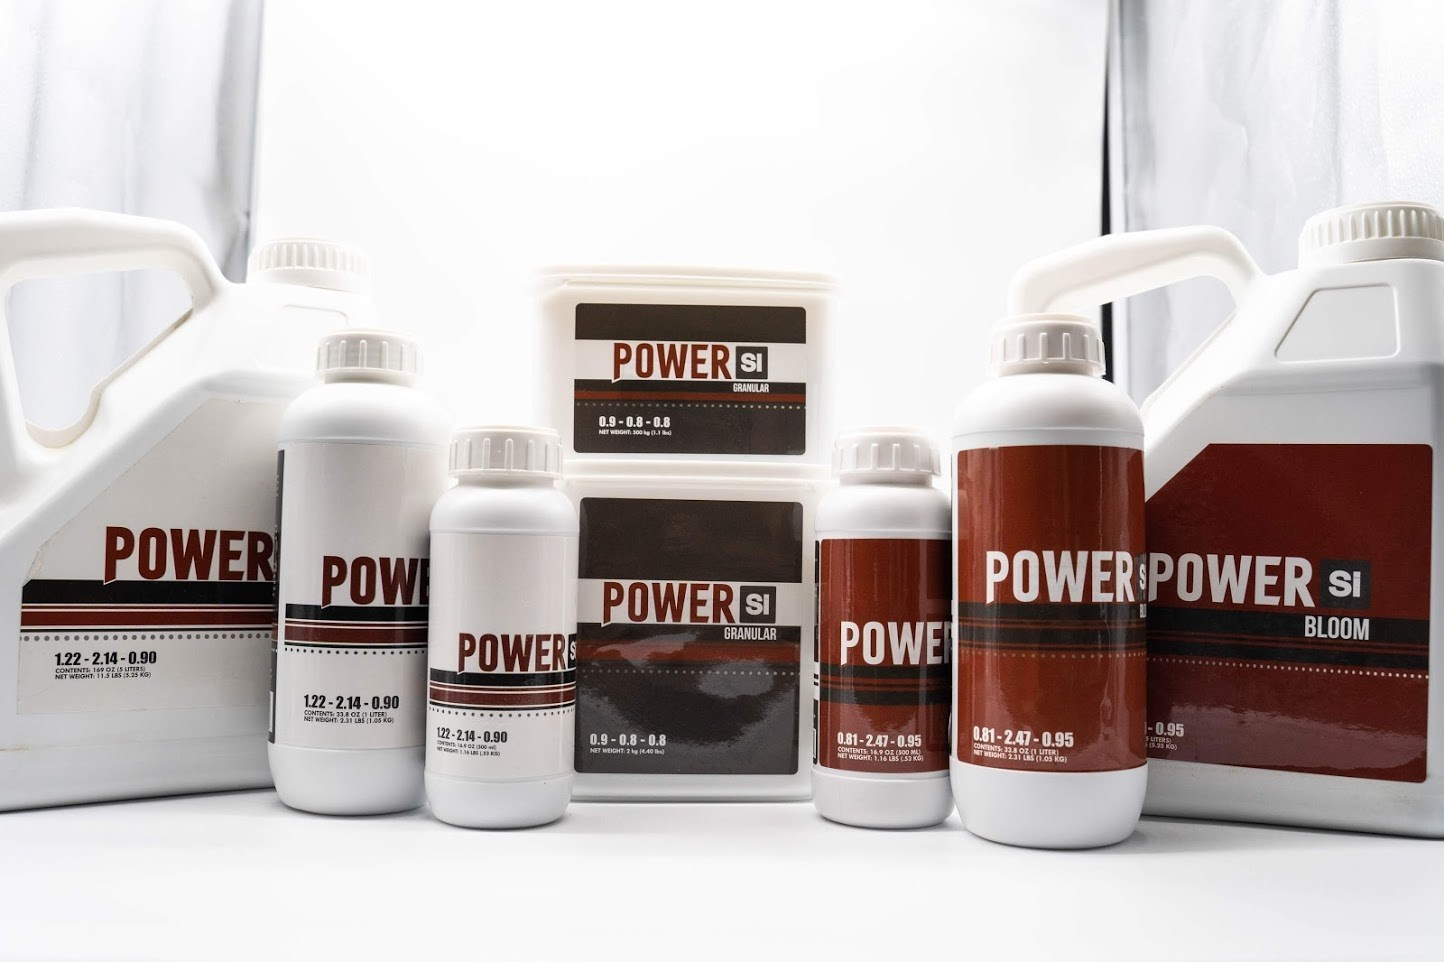 Power Si (CNW Group/GrowGeneration)